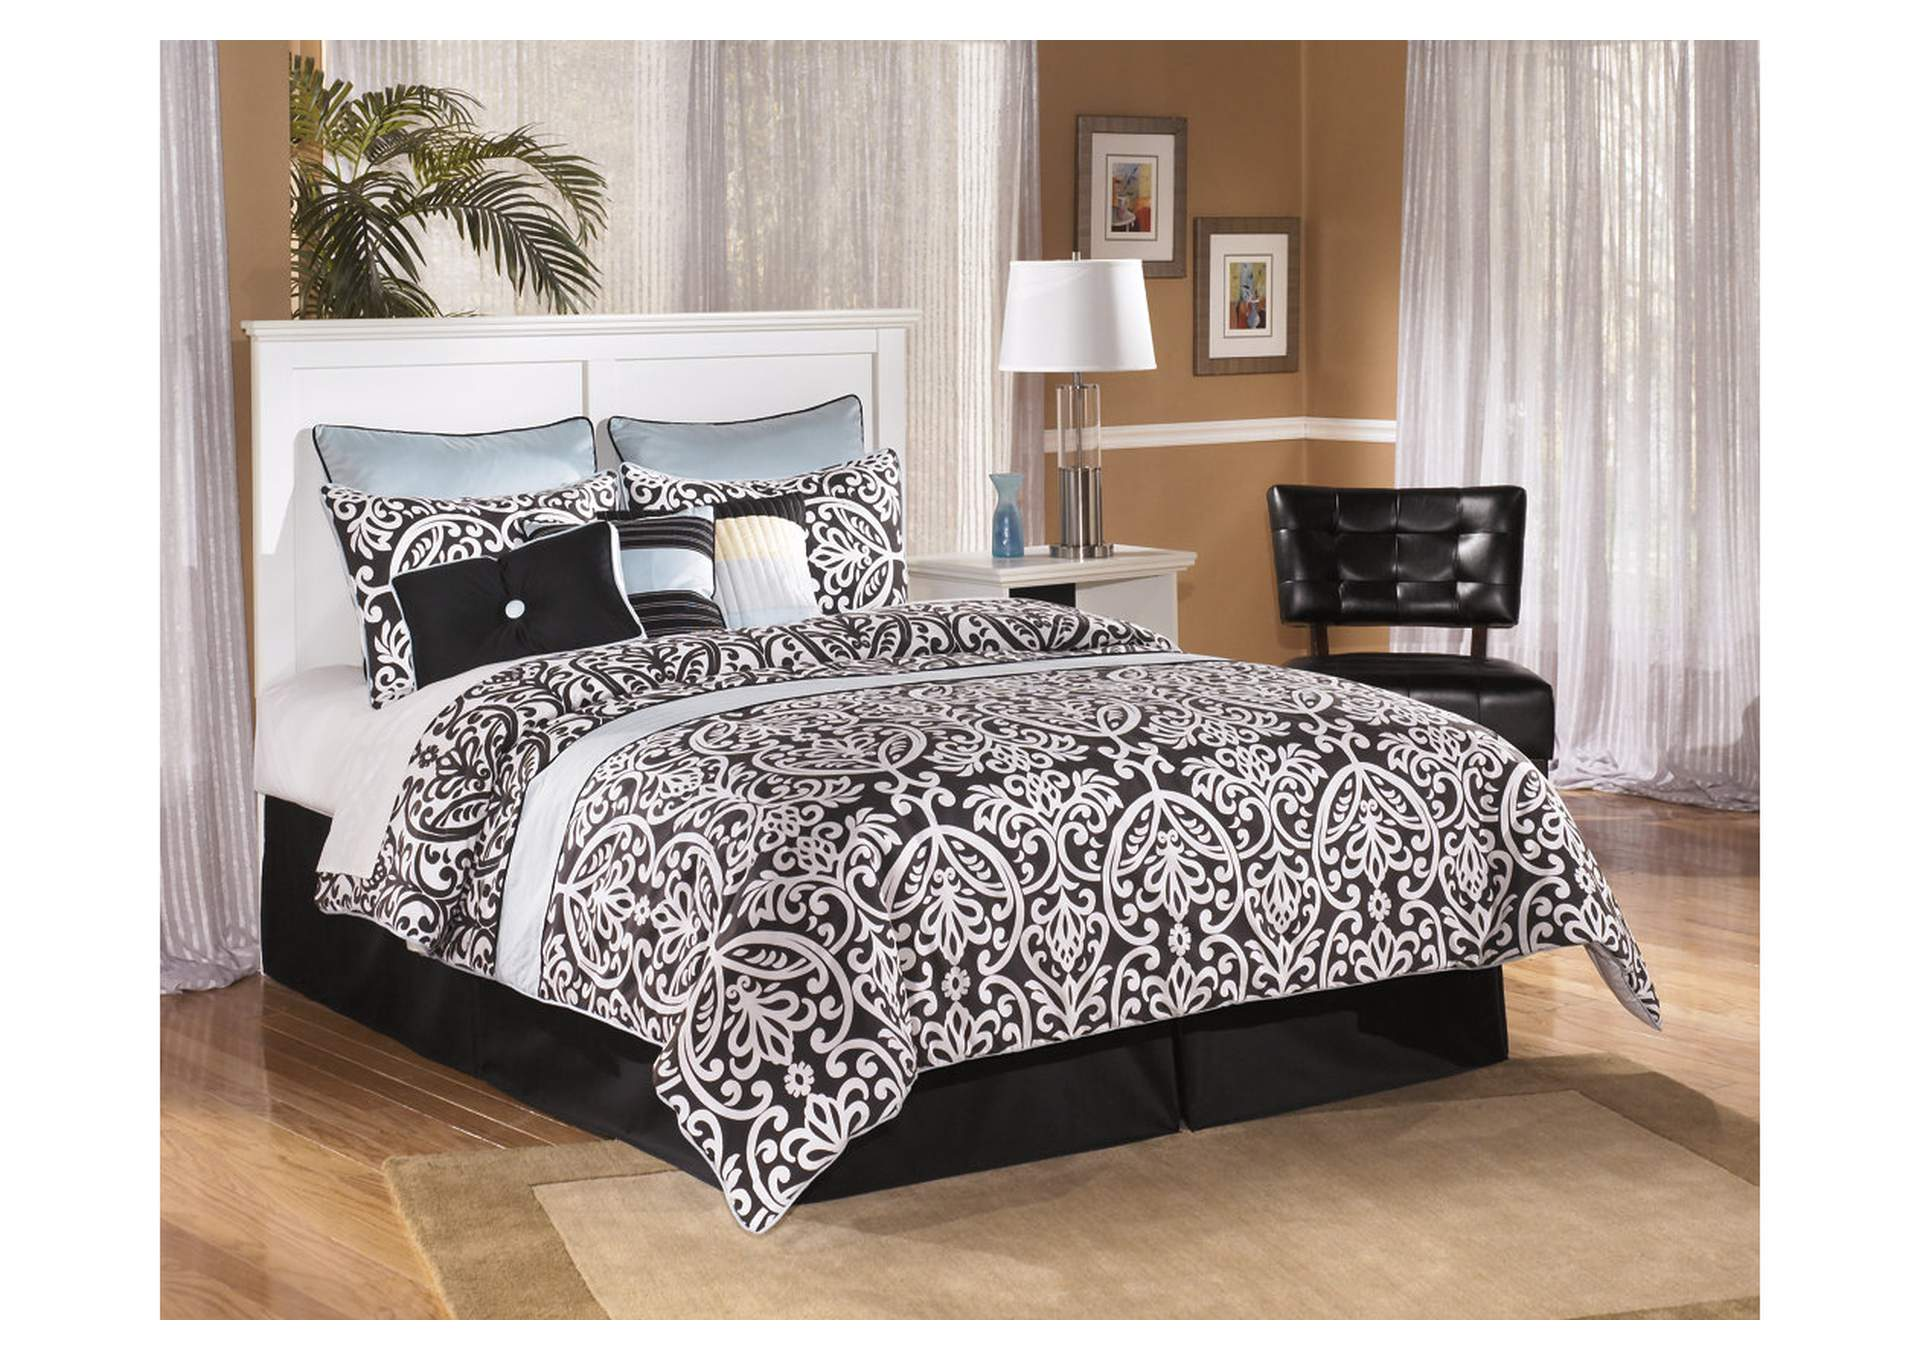 Bostwick Shoals Queen/Full Panel Headboard,ABF Signature Design by Ashley